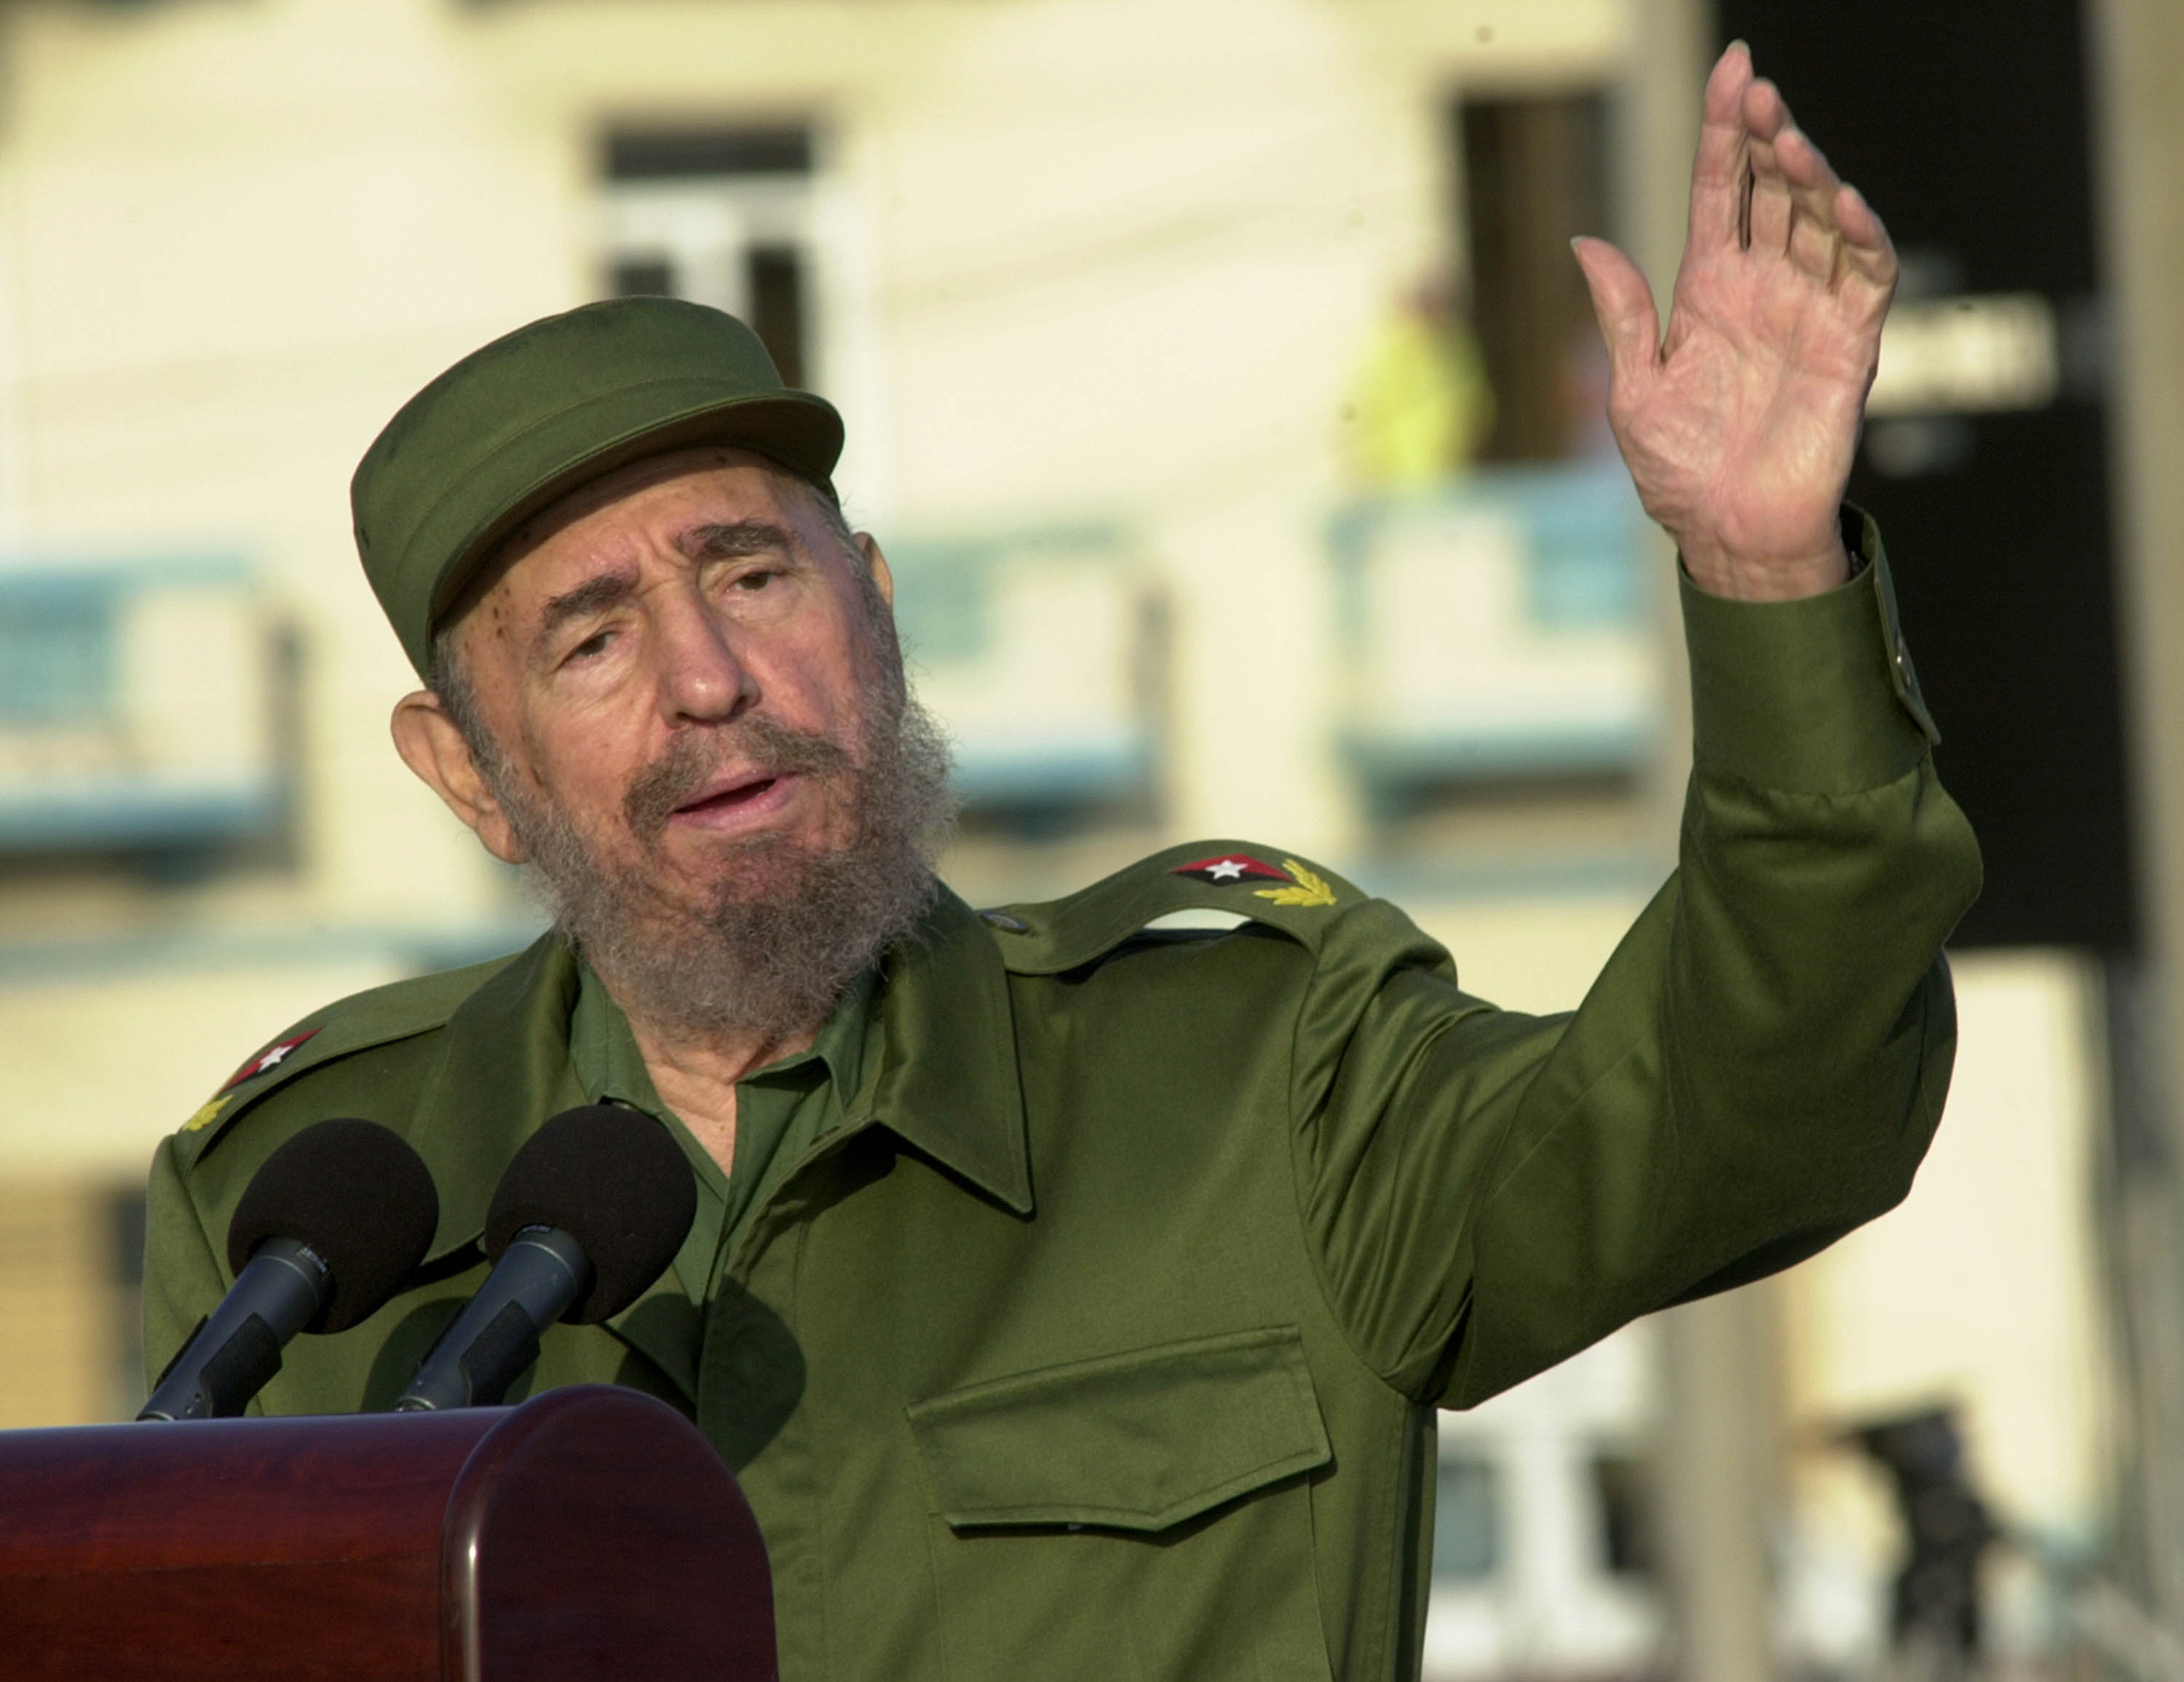 Fidel Castro delivering a speech in Havana on May 14, 2004